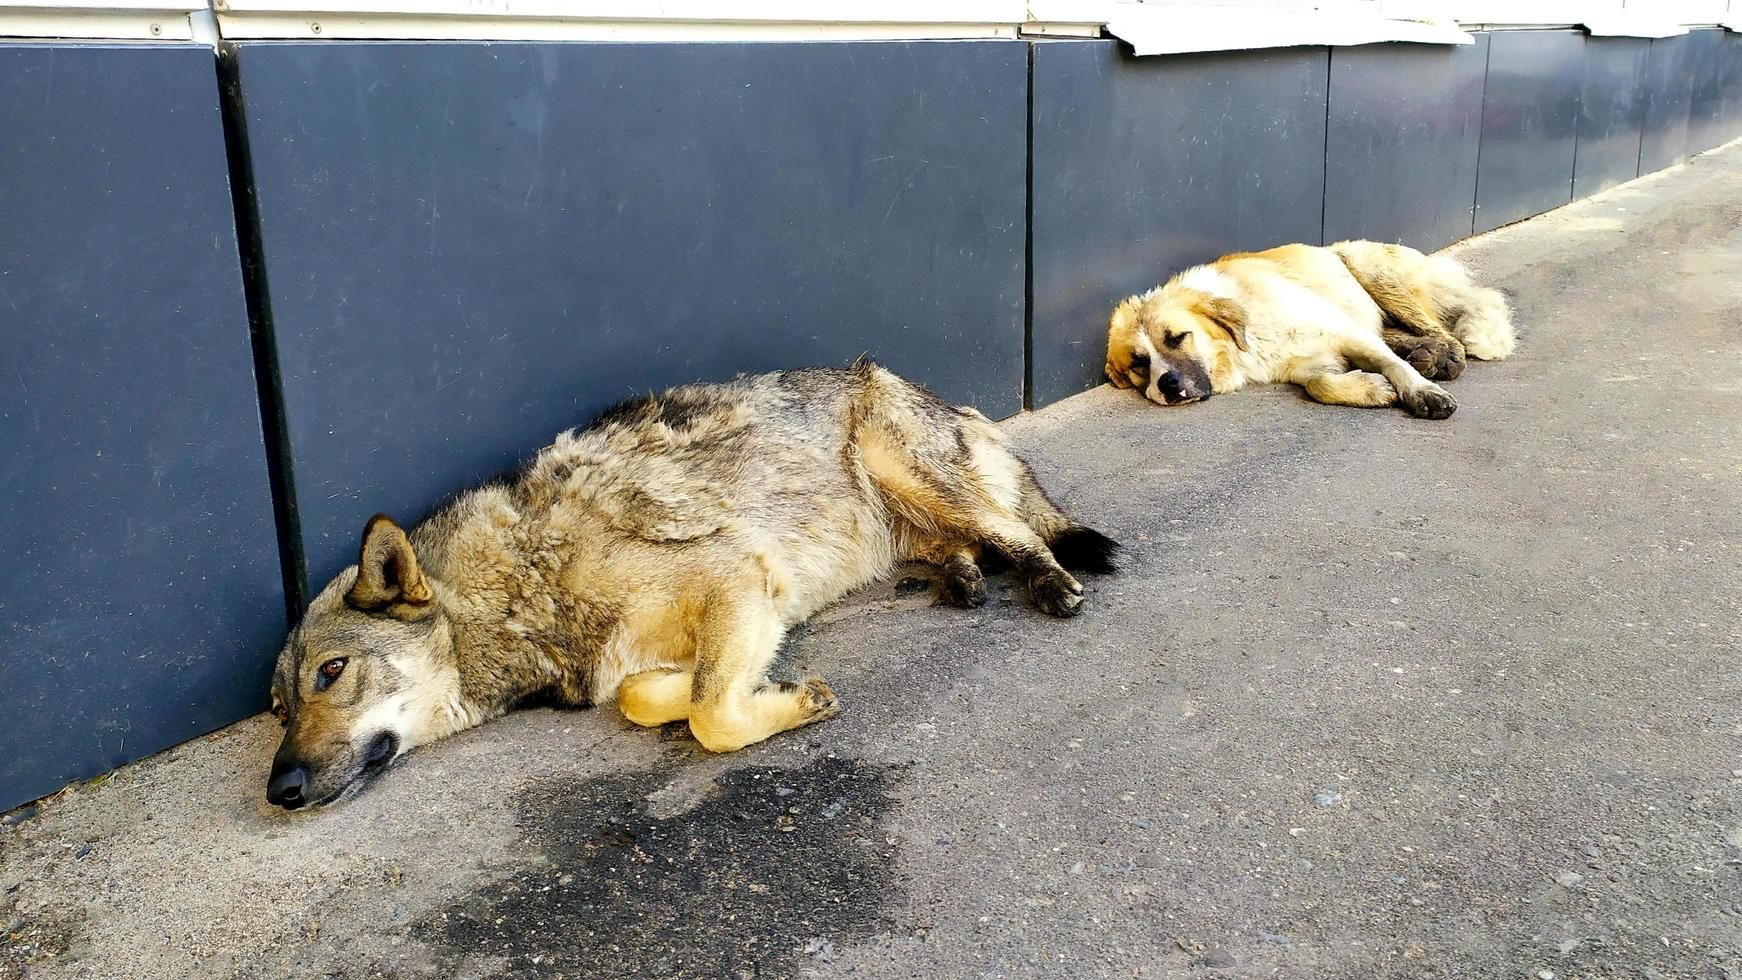 Dogs on the street. Two stray dogs lie on the asphalt near photo